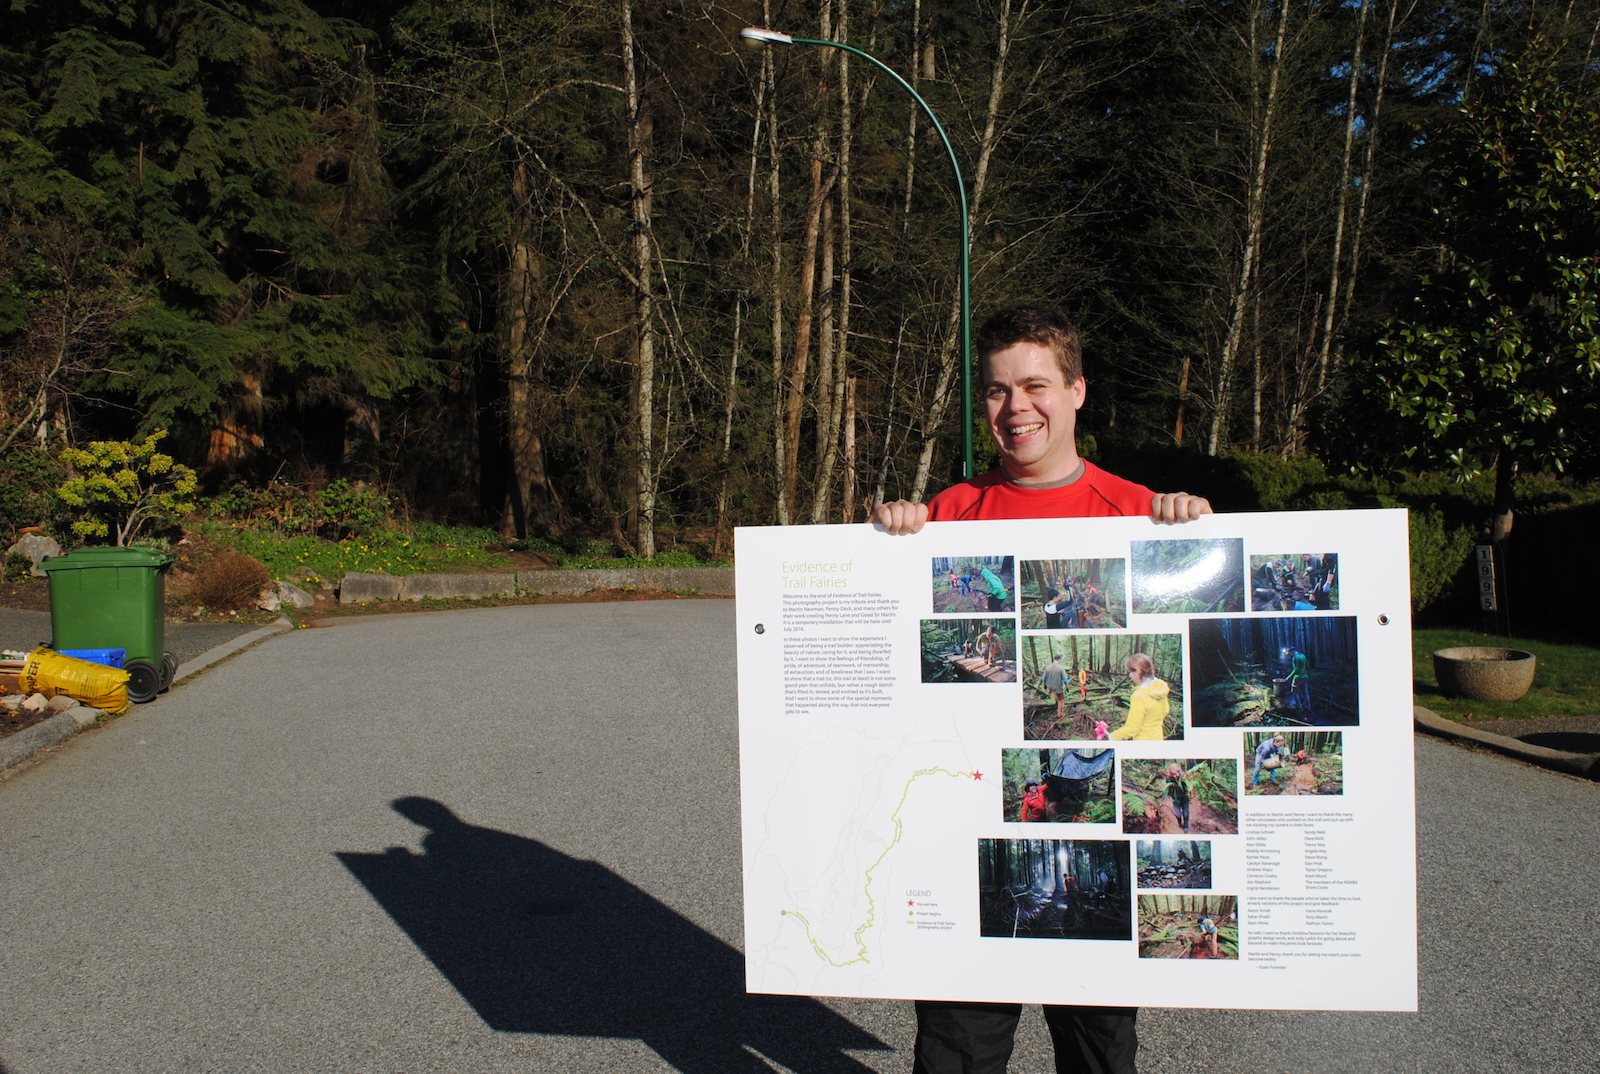 Excited to see the info posters for the first time It took 6 trips to hike everything in. Until we were ready to put it all up I kept everything hidden off the trail in black garbage bags to make it harder to spot and to protect it from the elements. Photo by Kathryn Toews.